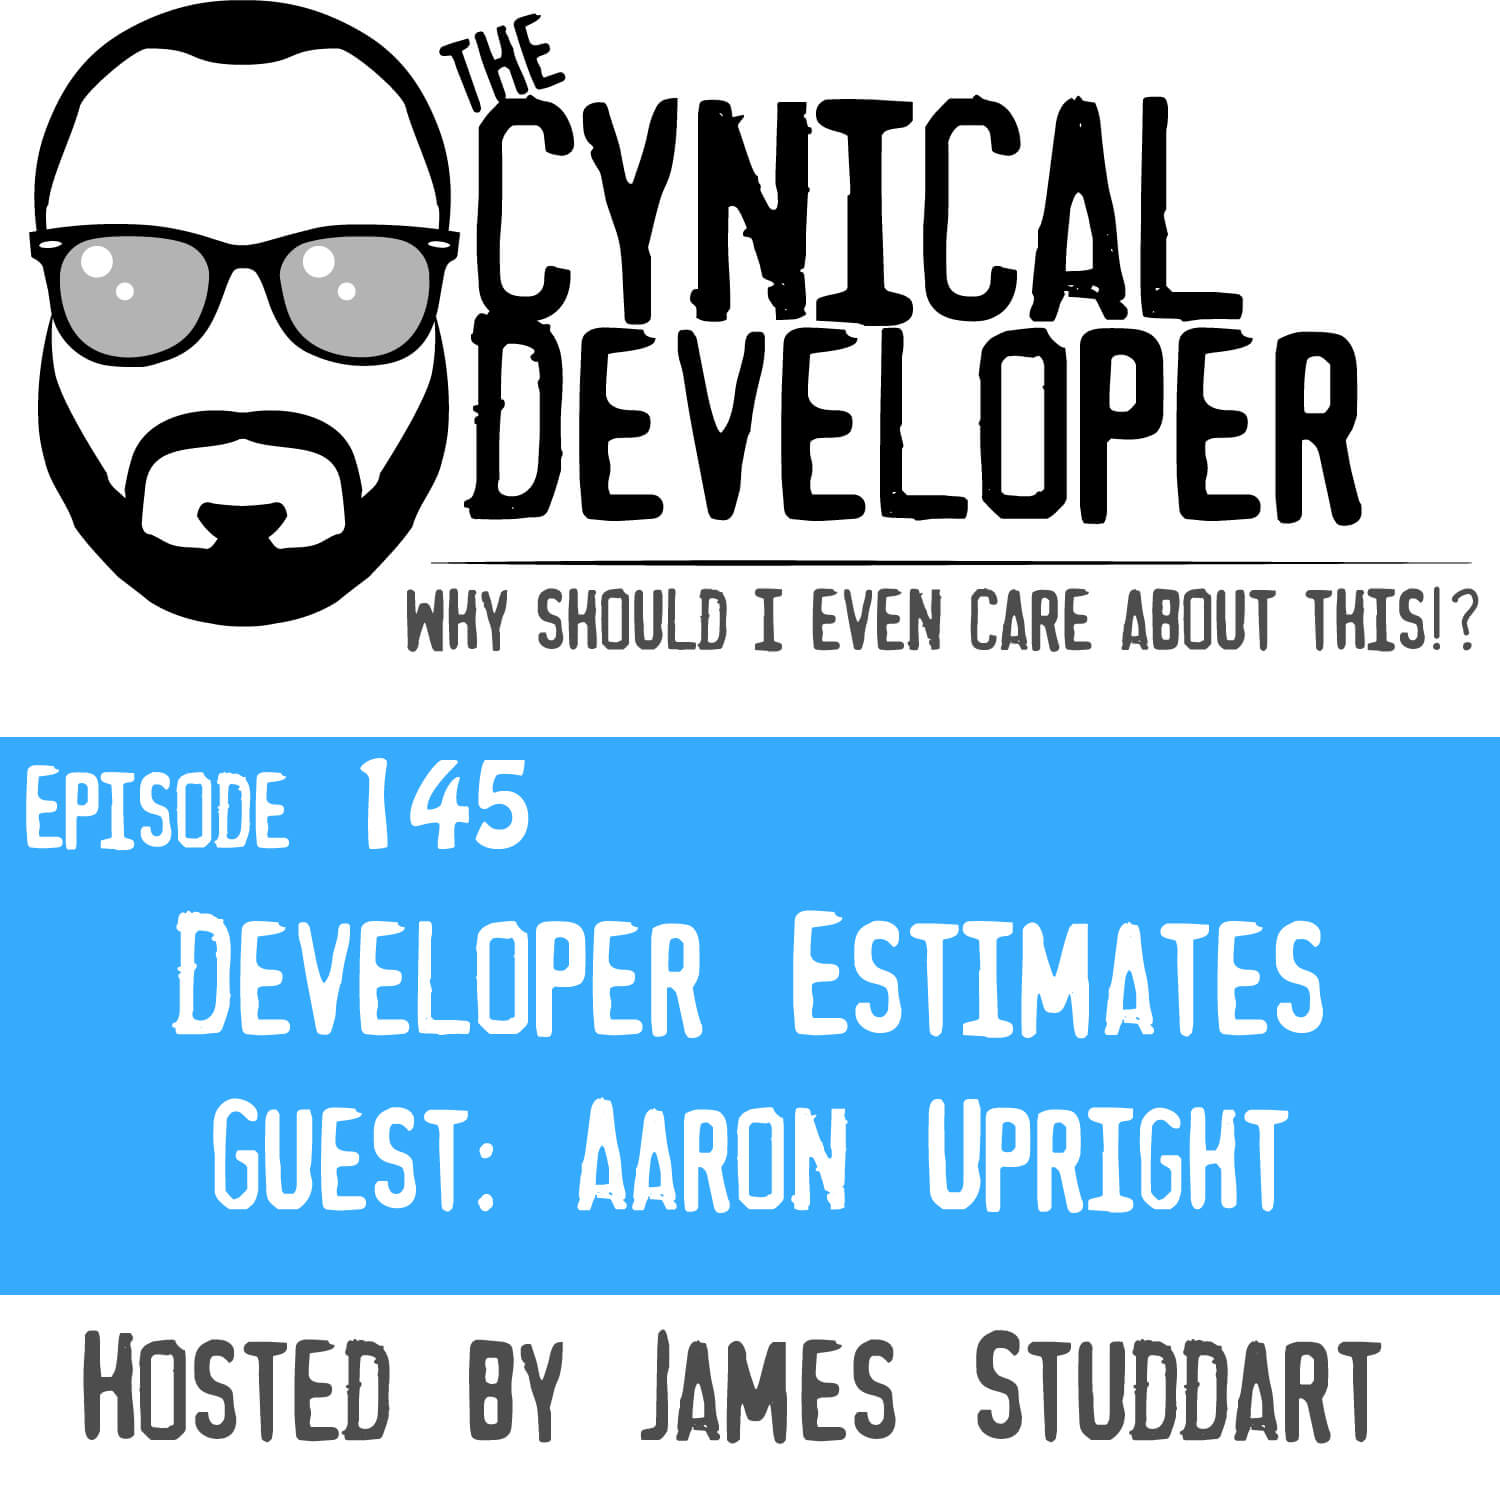 Episode 145 - Developer Estimates